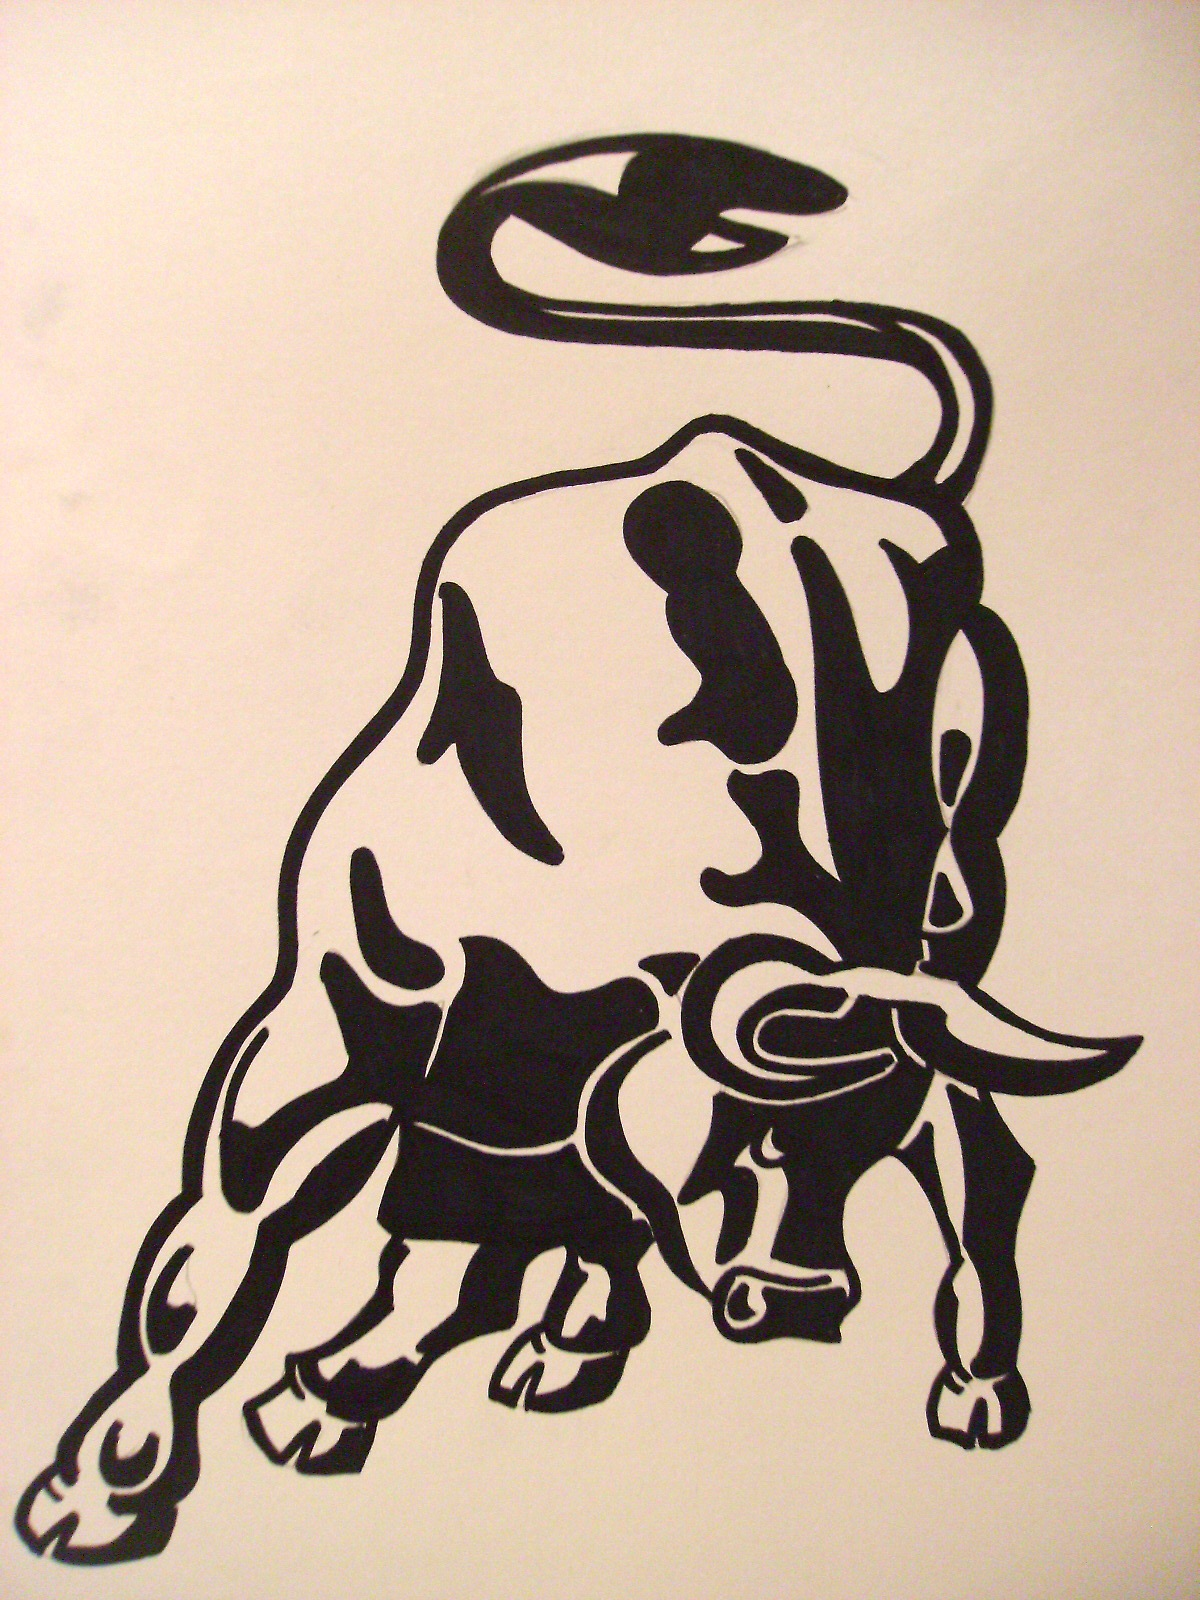 convince me not to get this tattoo tommorrow pic bodybuildingcom forums - Lamborghini Bull Tattoo